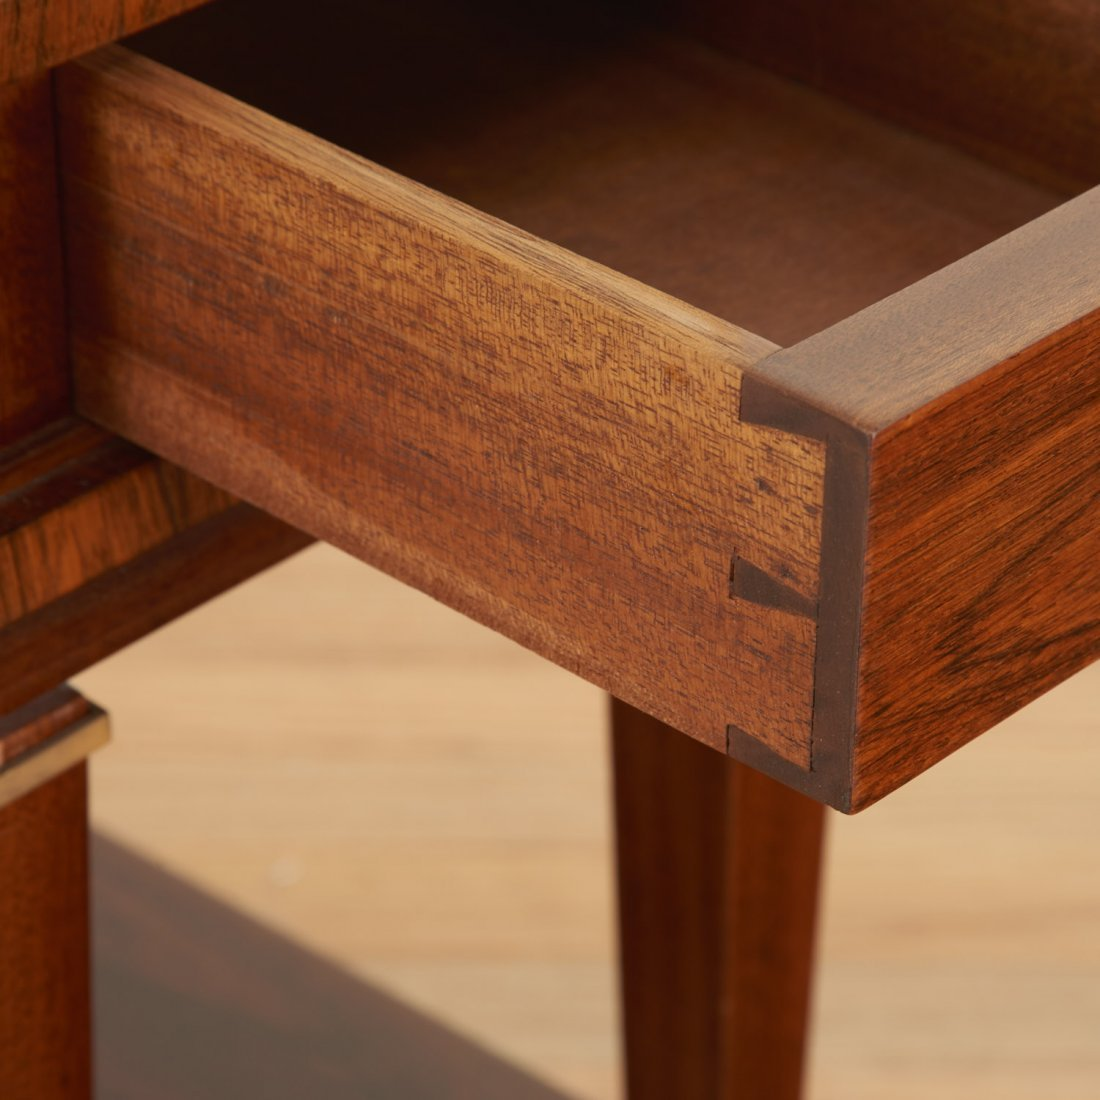 Manner Maxime Old near pair side tables - 3